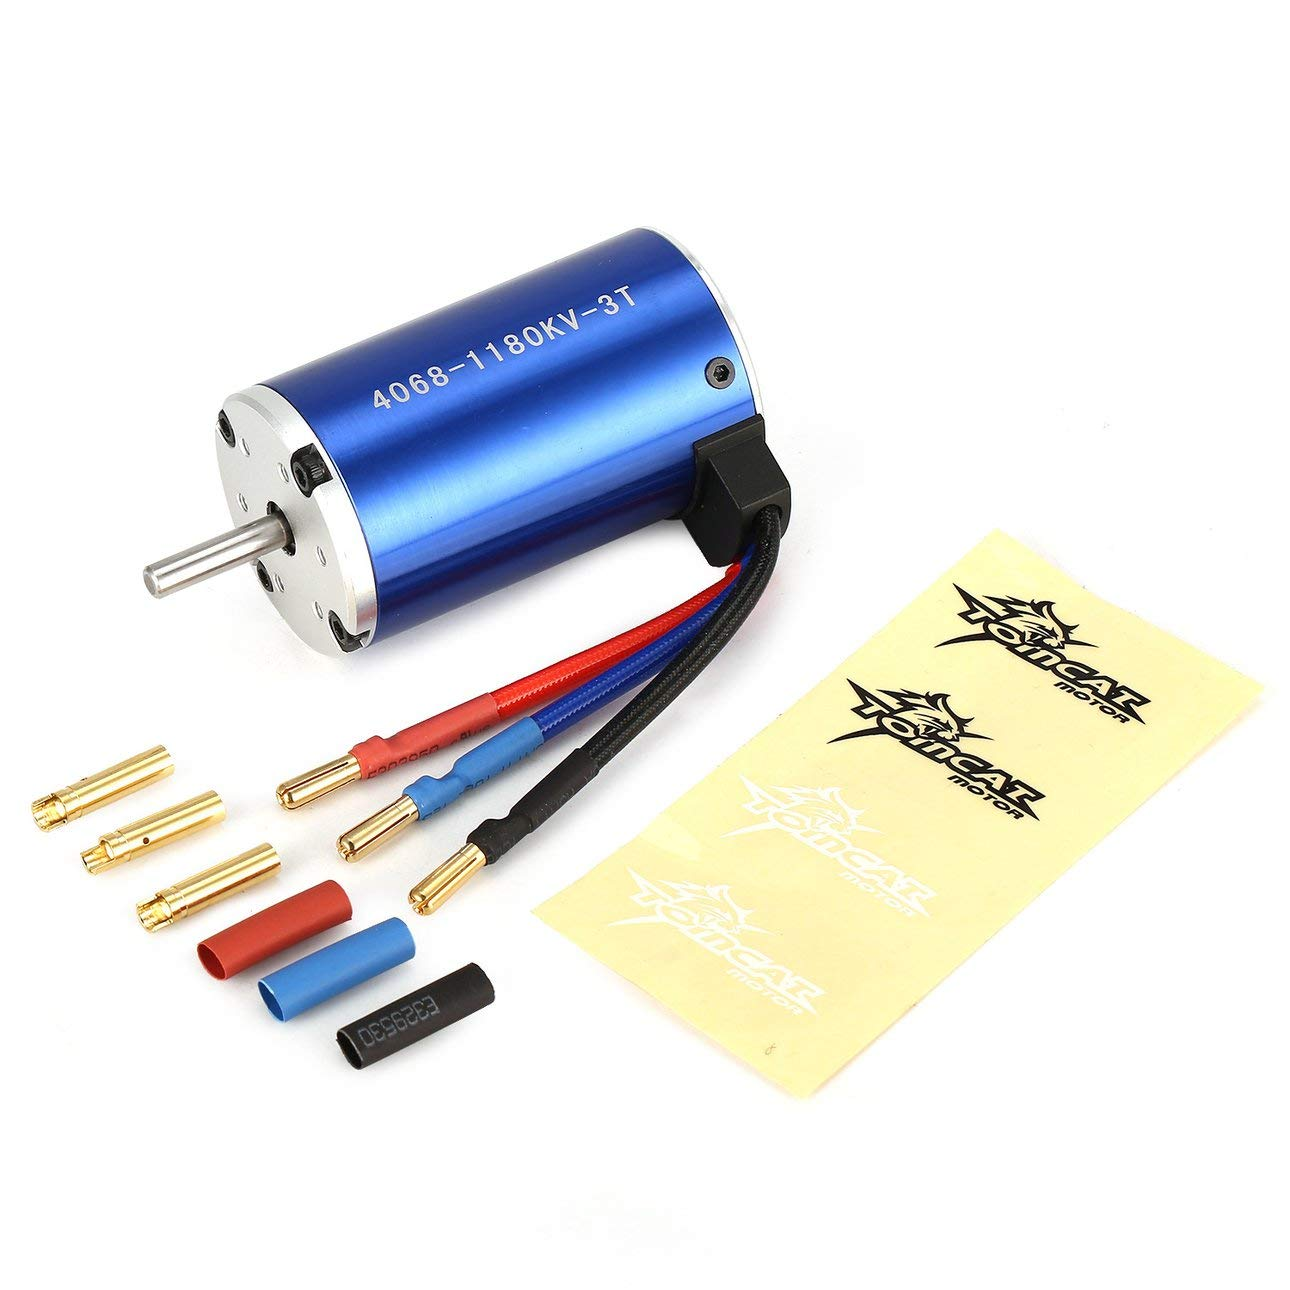 Liobaba TC-CY 4068 3T KV1180 5mm Sensorless Brushless Motor Off-Road RC Remote Control Car Model Spare Parts Component DIY